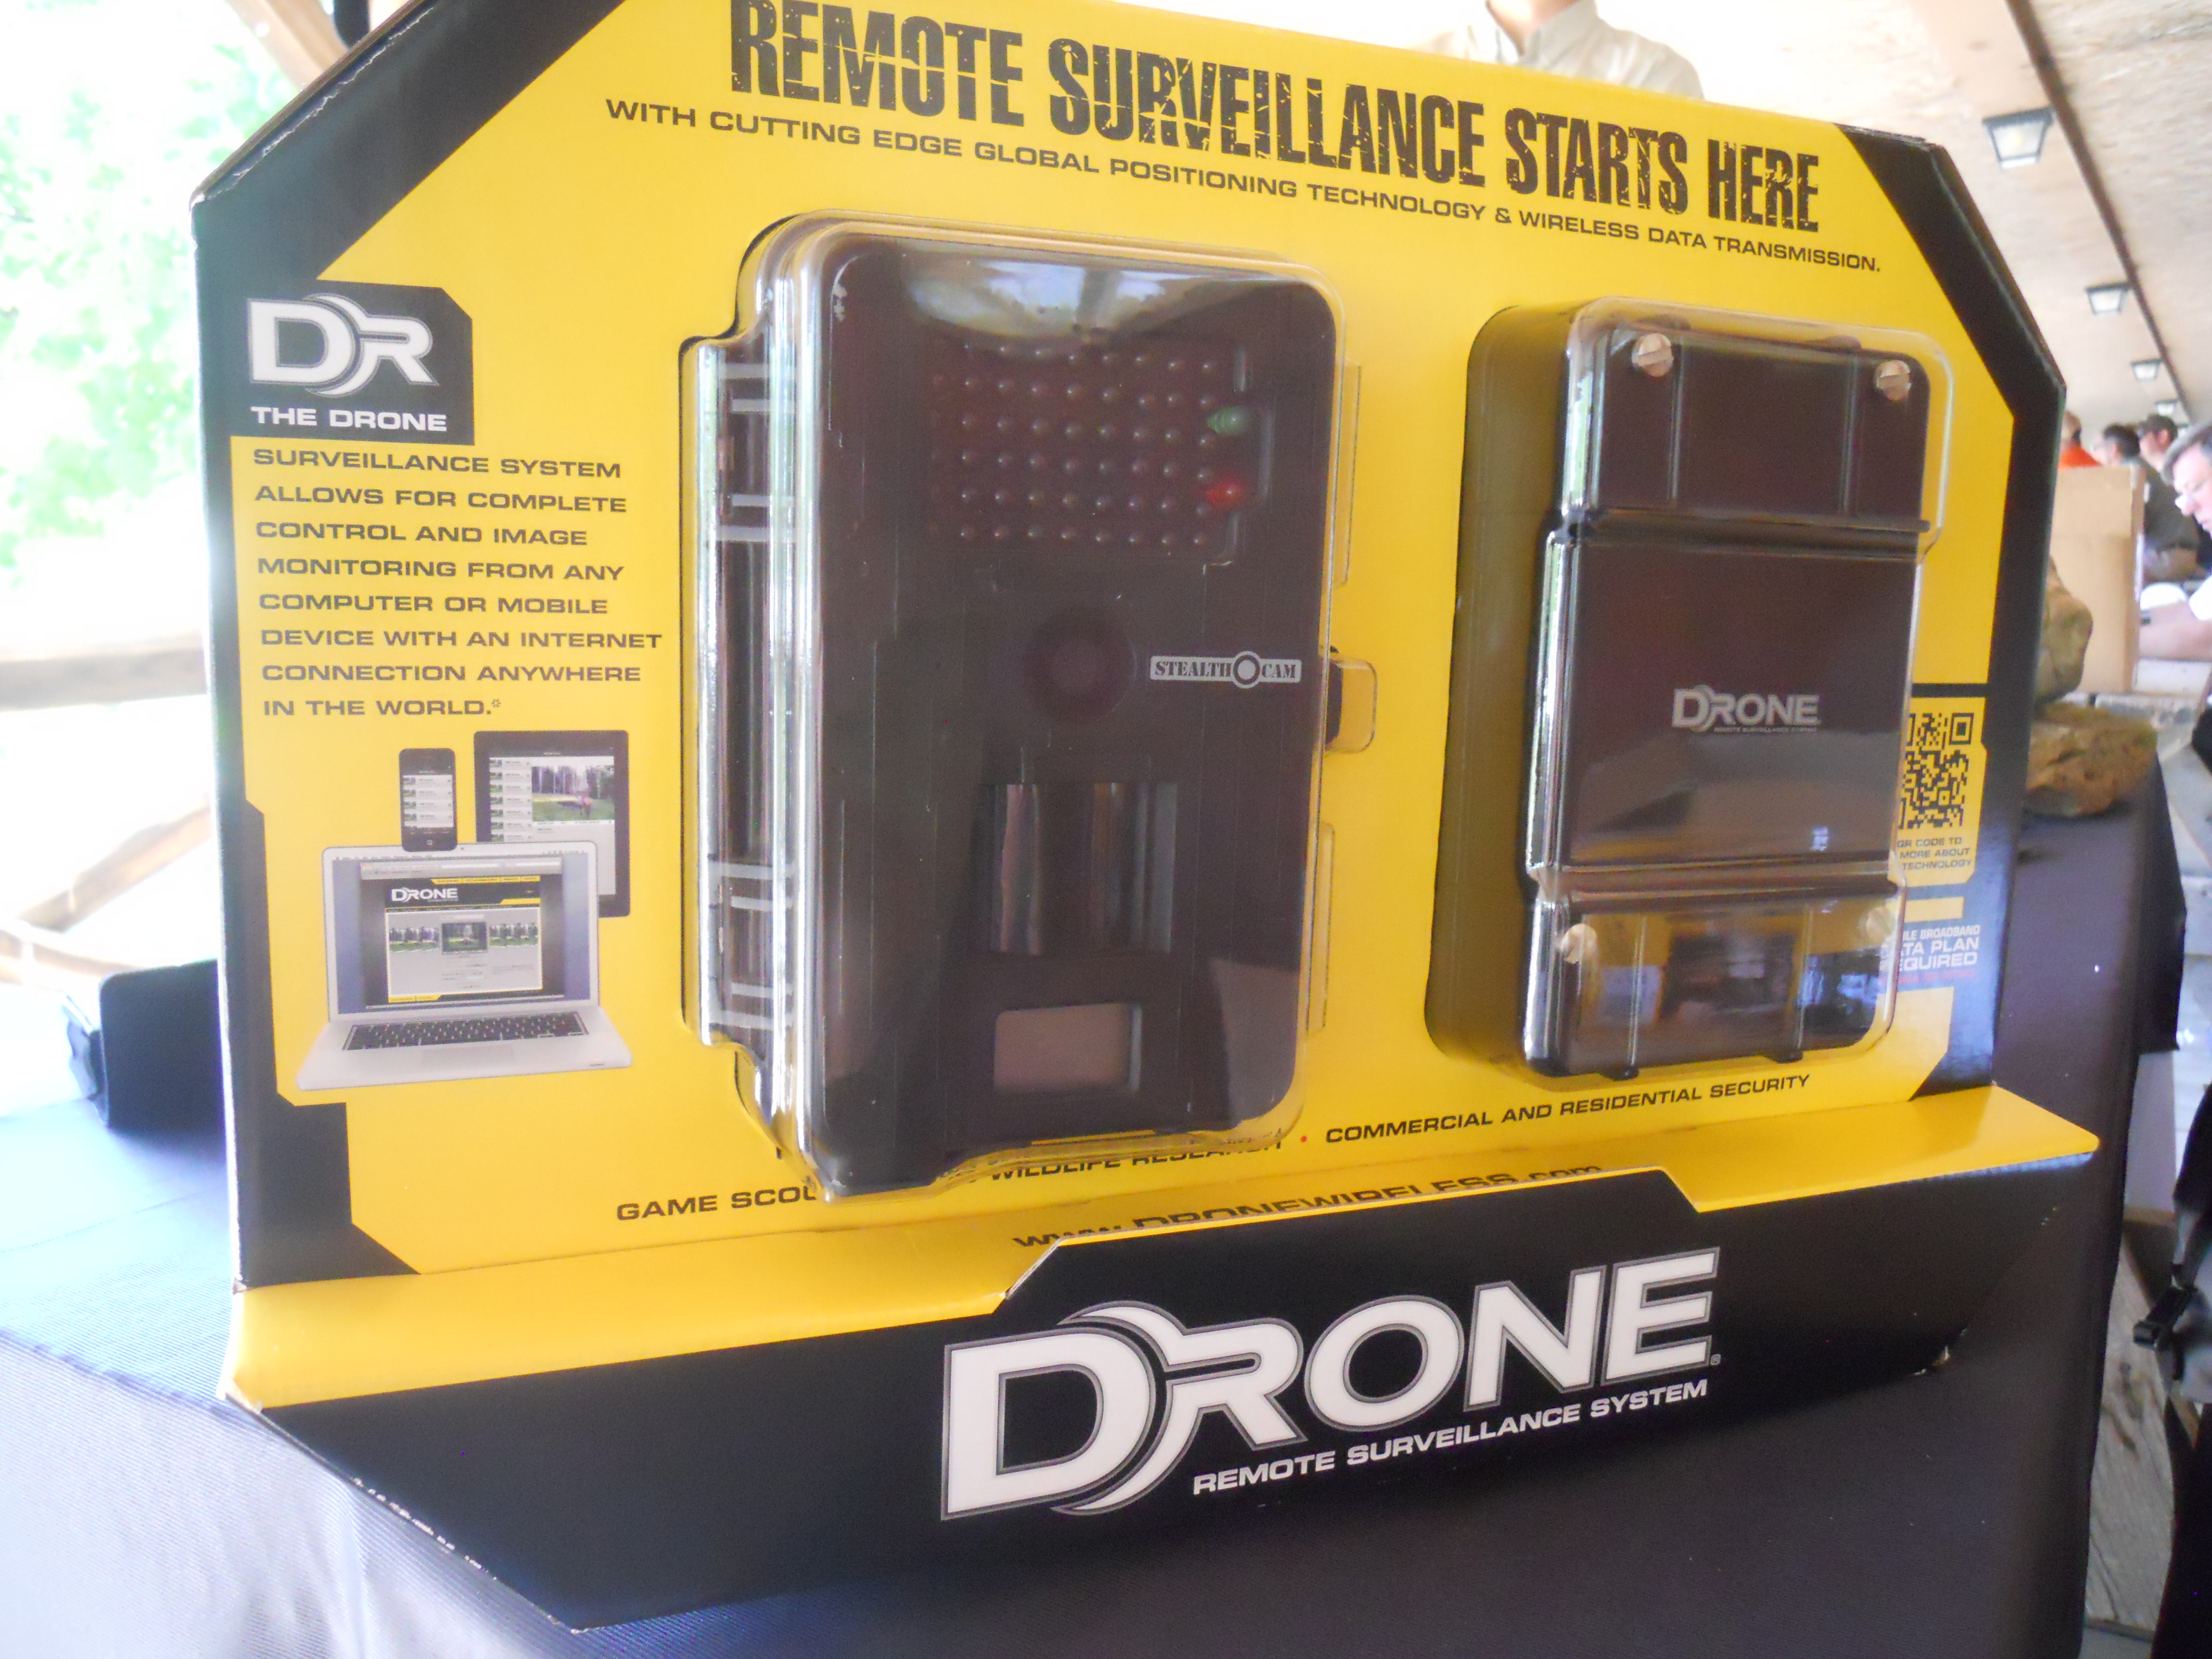 Drone Remote Surveillance System